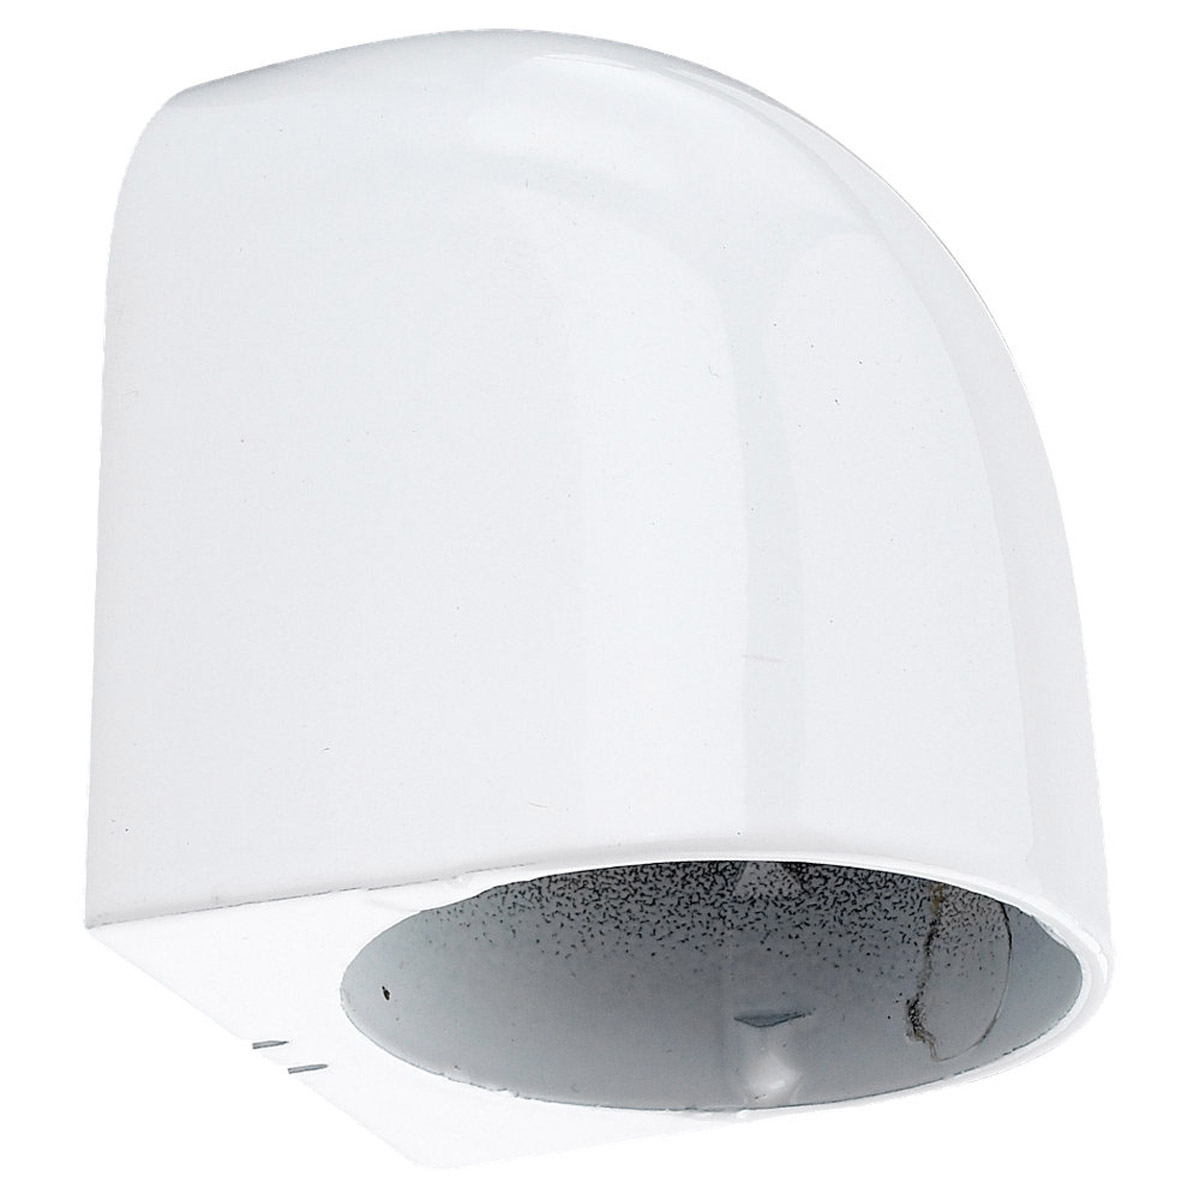 Sea Gull Lighting 2 Light Deck, Rail, Wall Downlight in White 9396-15